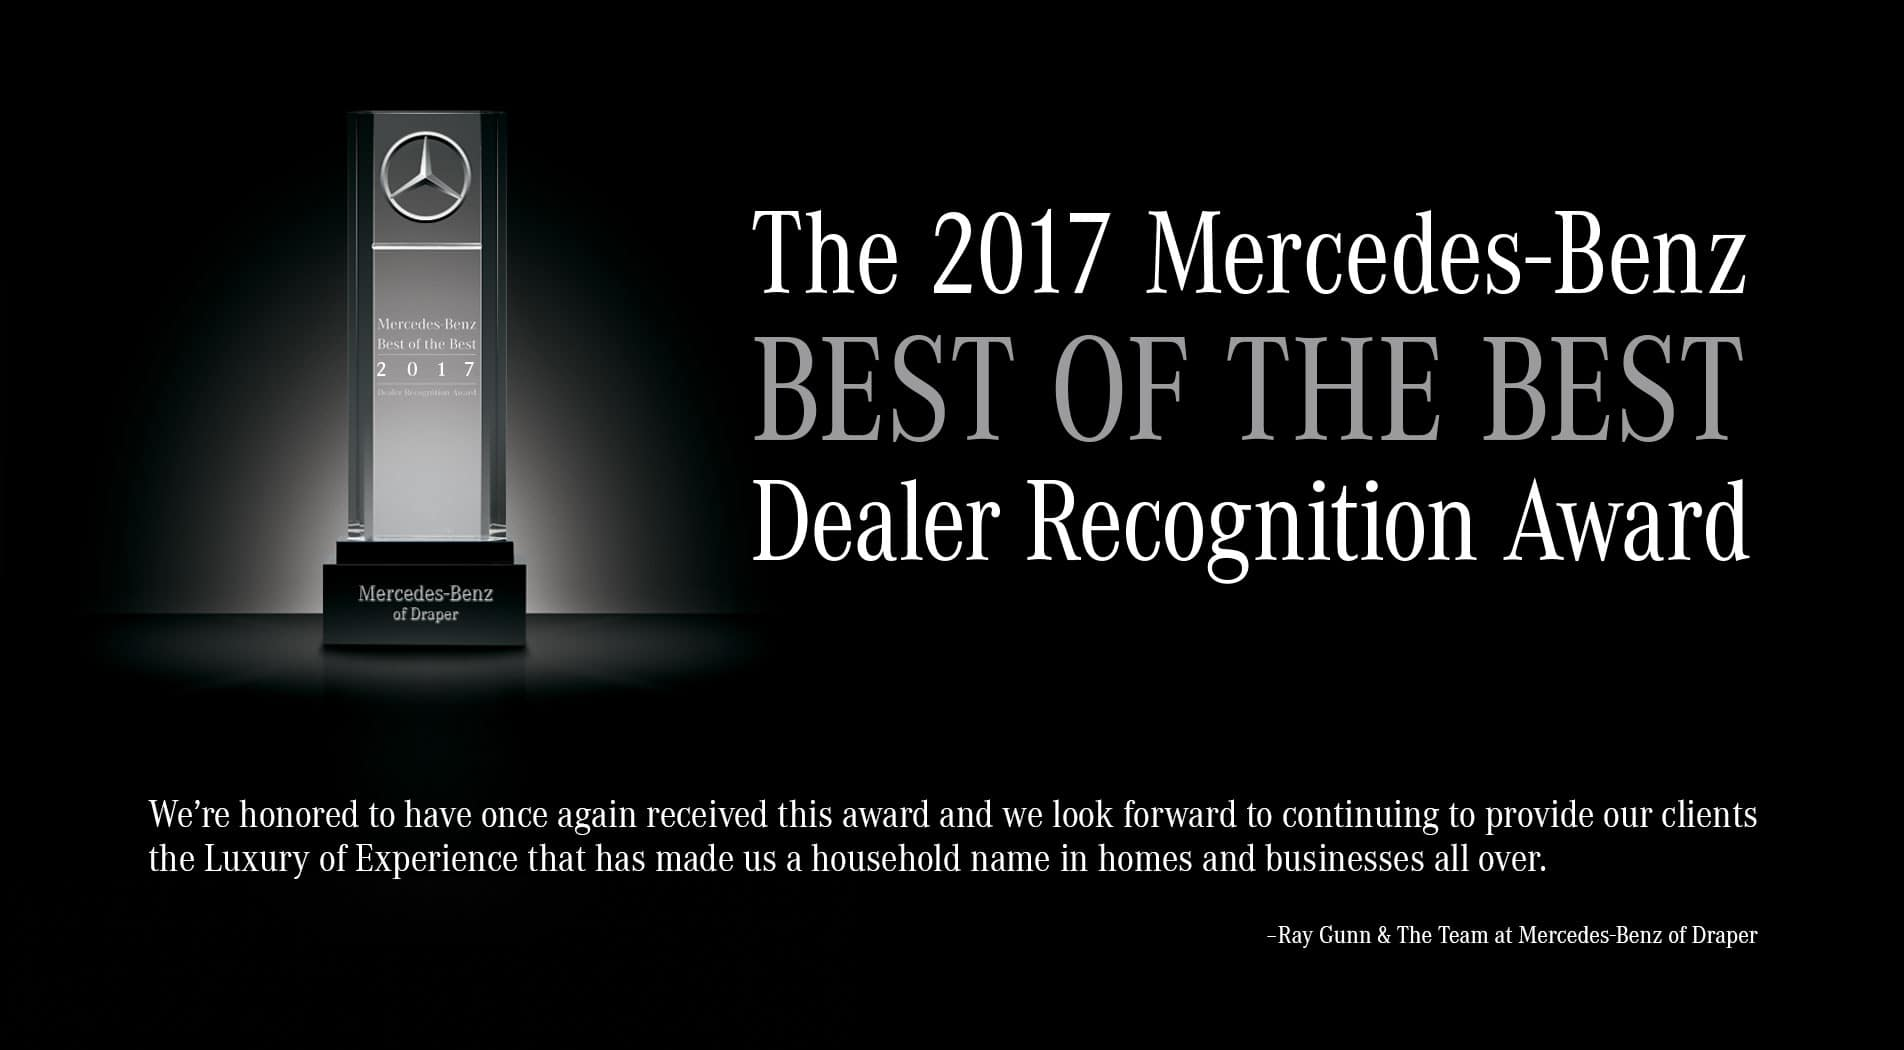 Mercedes-Benz of Draper - Best of The Best